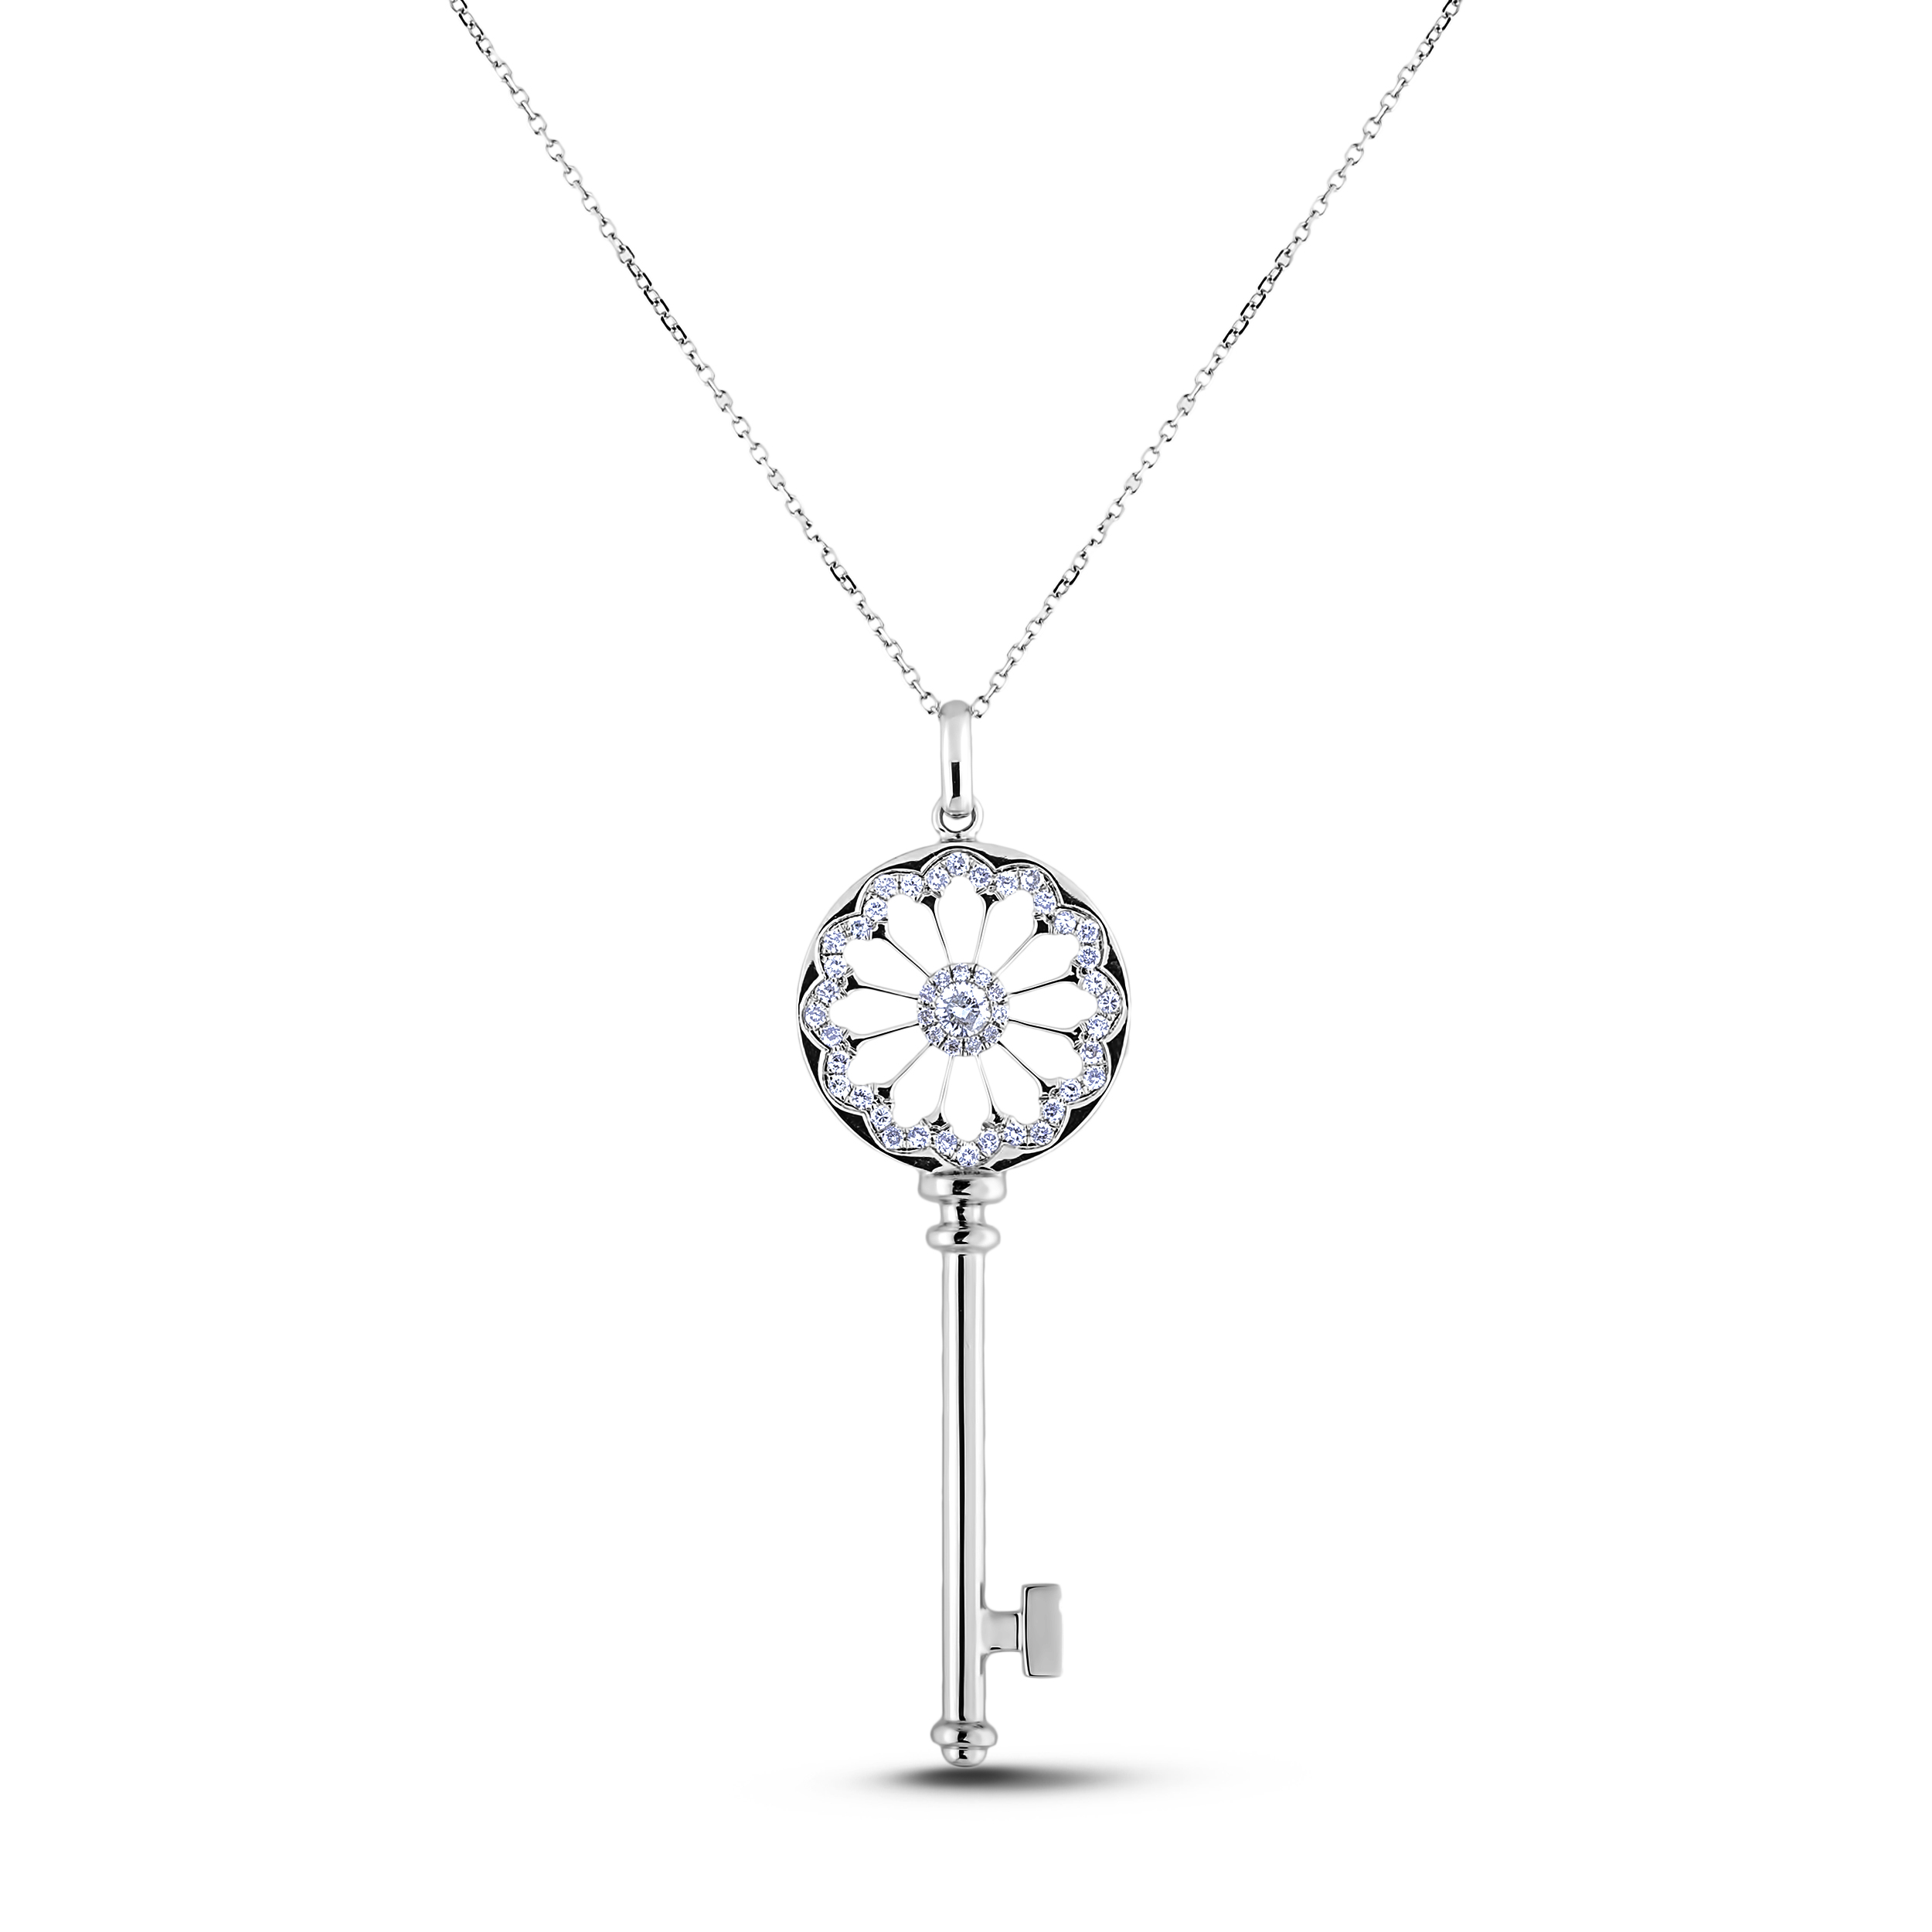 Diamond Pendants AFCP1569 (Pendants)